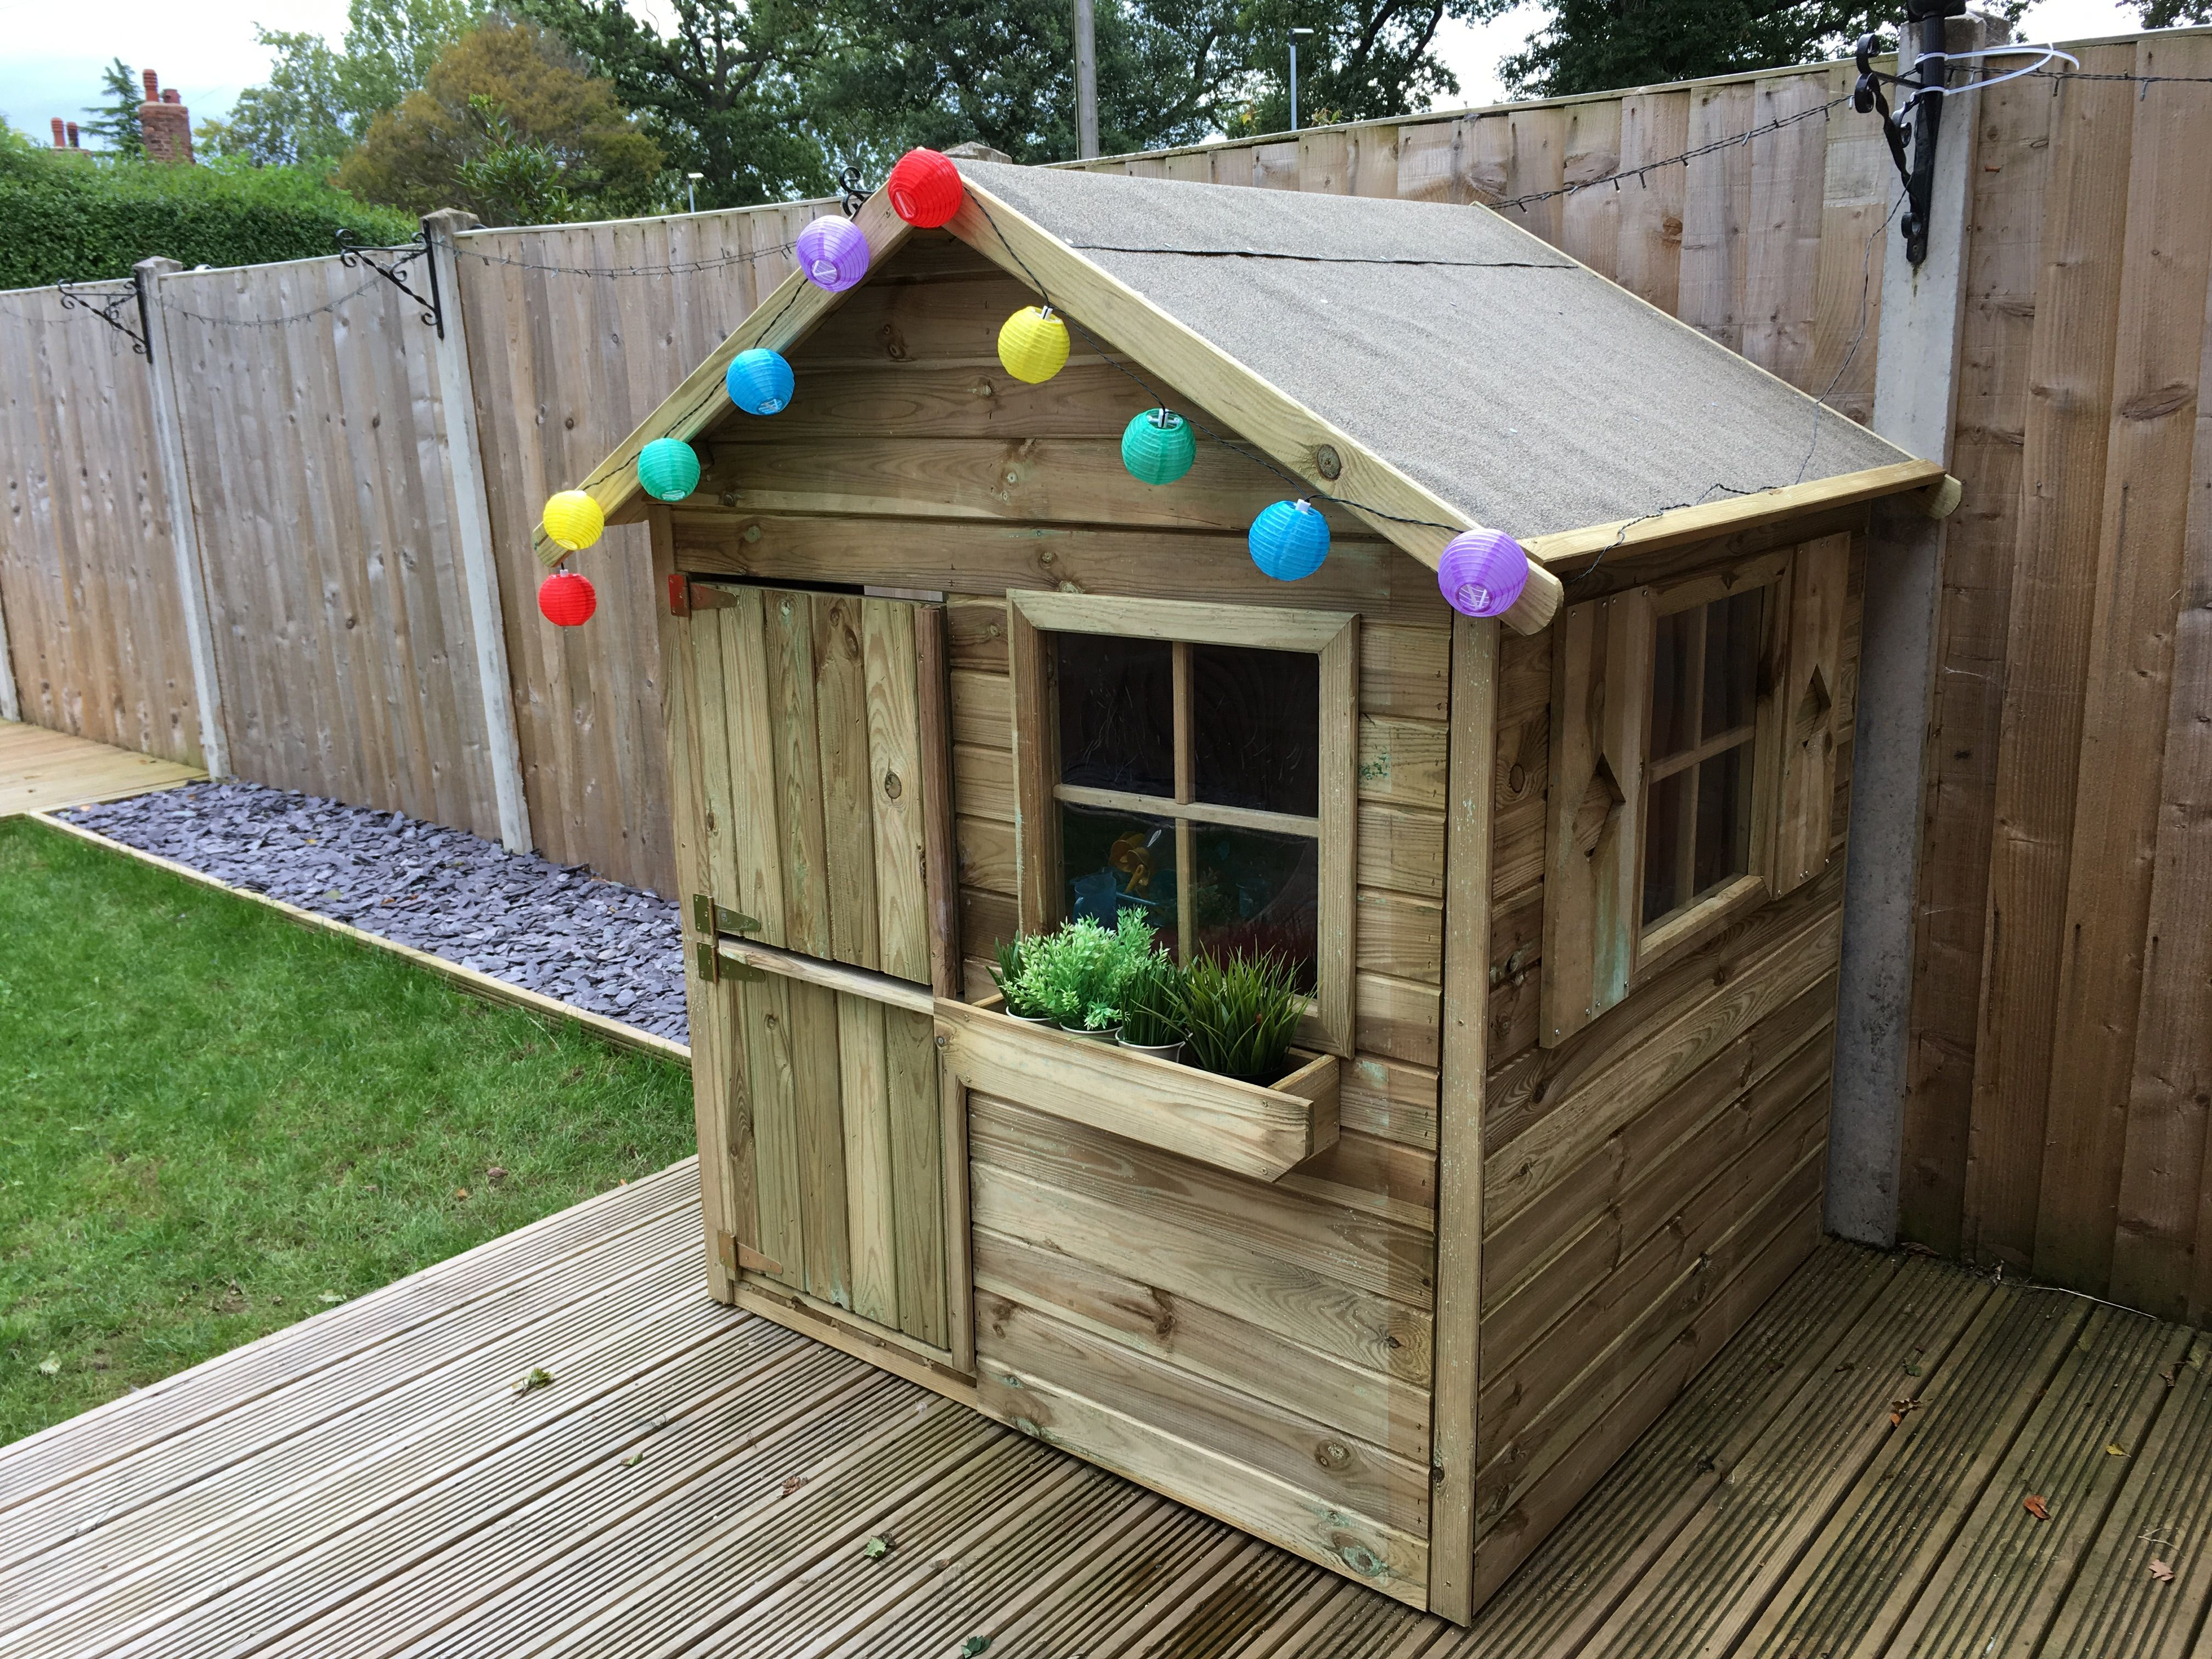 New home garden  Pin by Alex Richards on New home  Garden and Playhouse  Pinterest